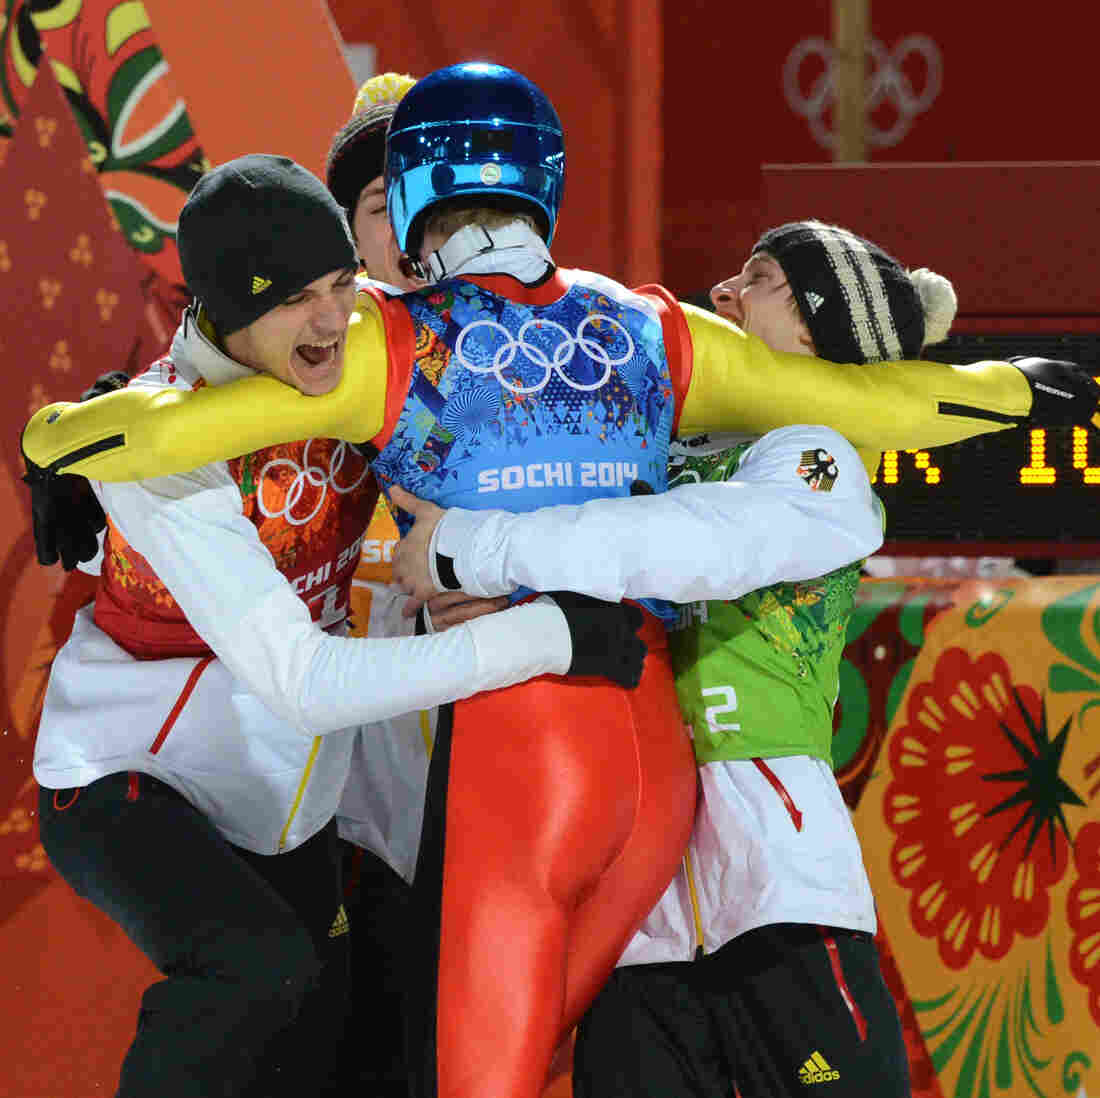 Germany's Severin Freund celebrates with teammates after competing to win gold in the men's team ski jumping competition at the Sochi Winter Olympics on Monday.